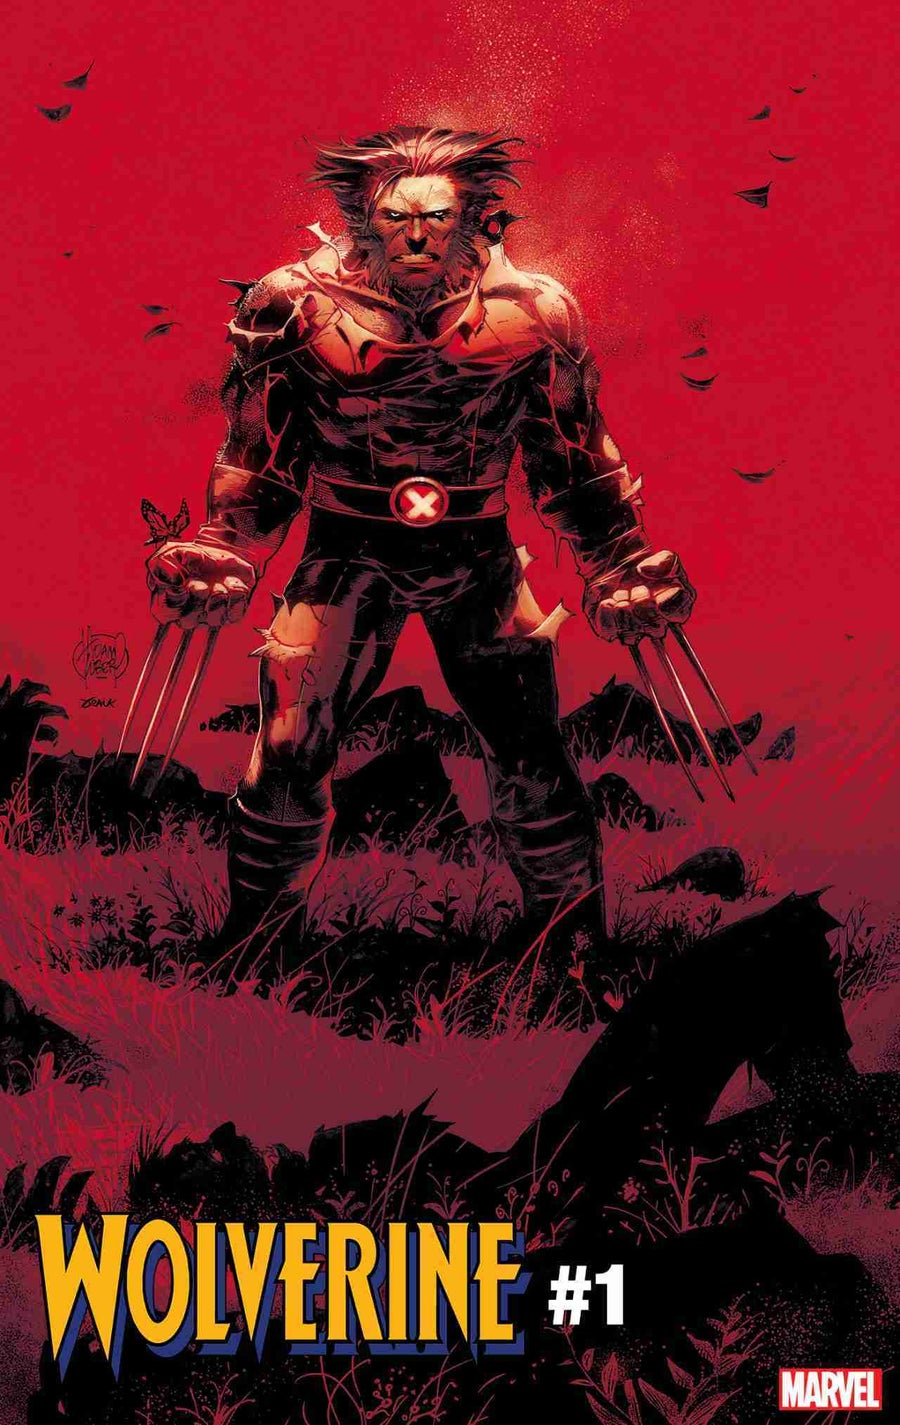 Wolverine-01-cover_final